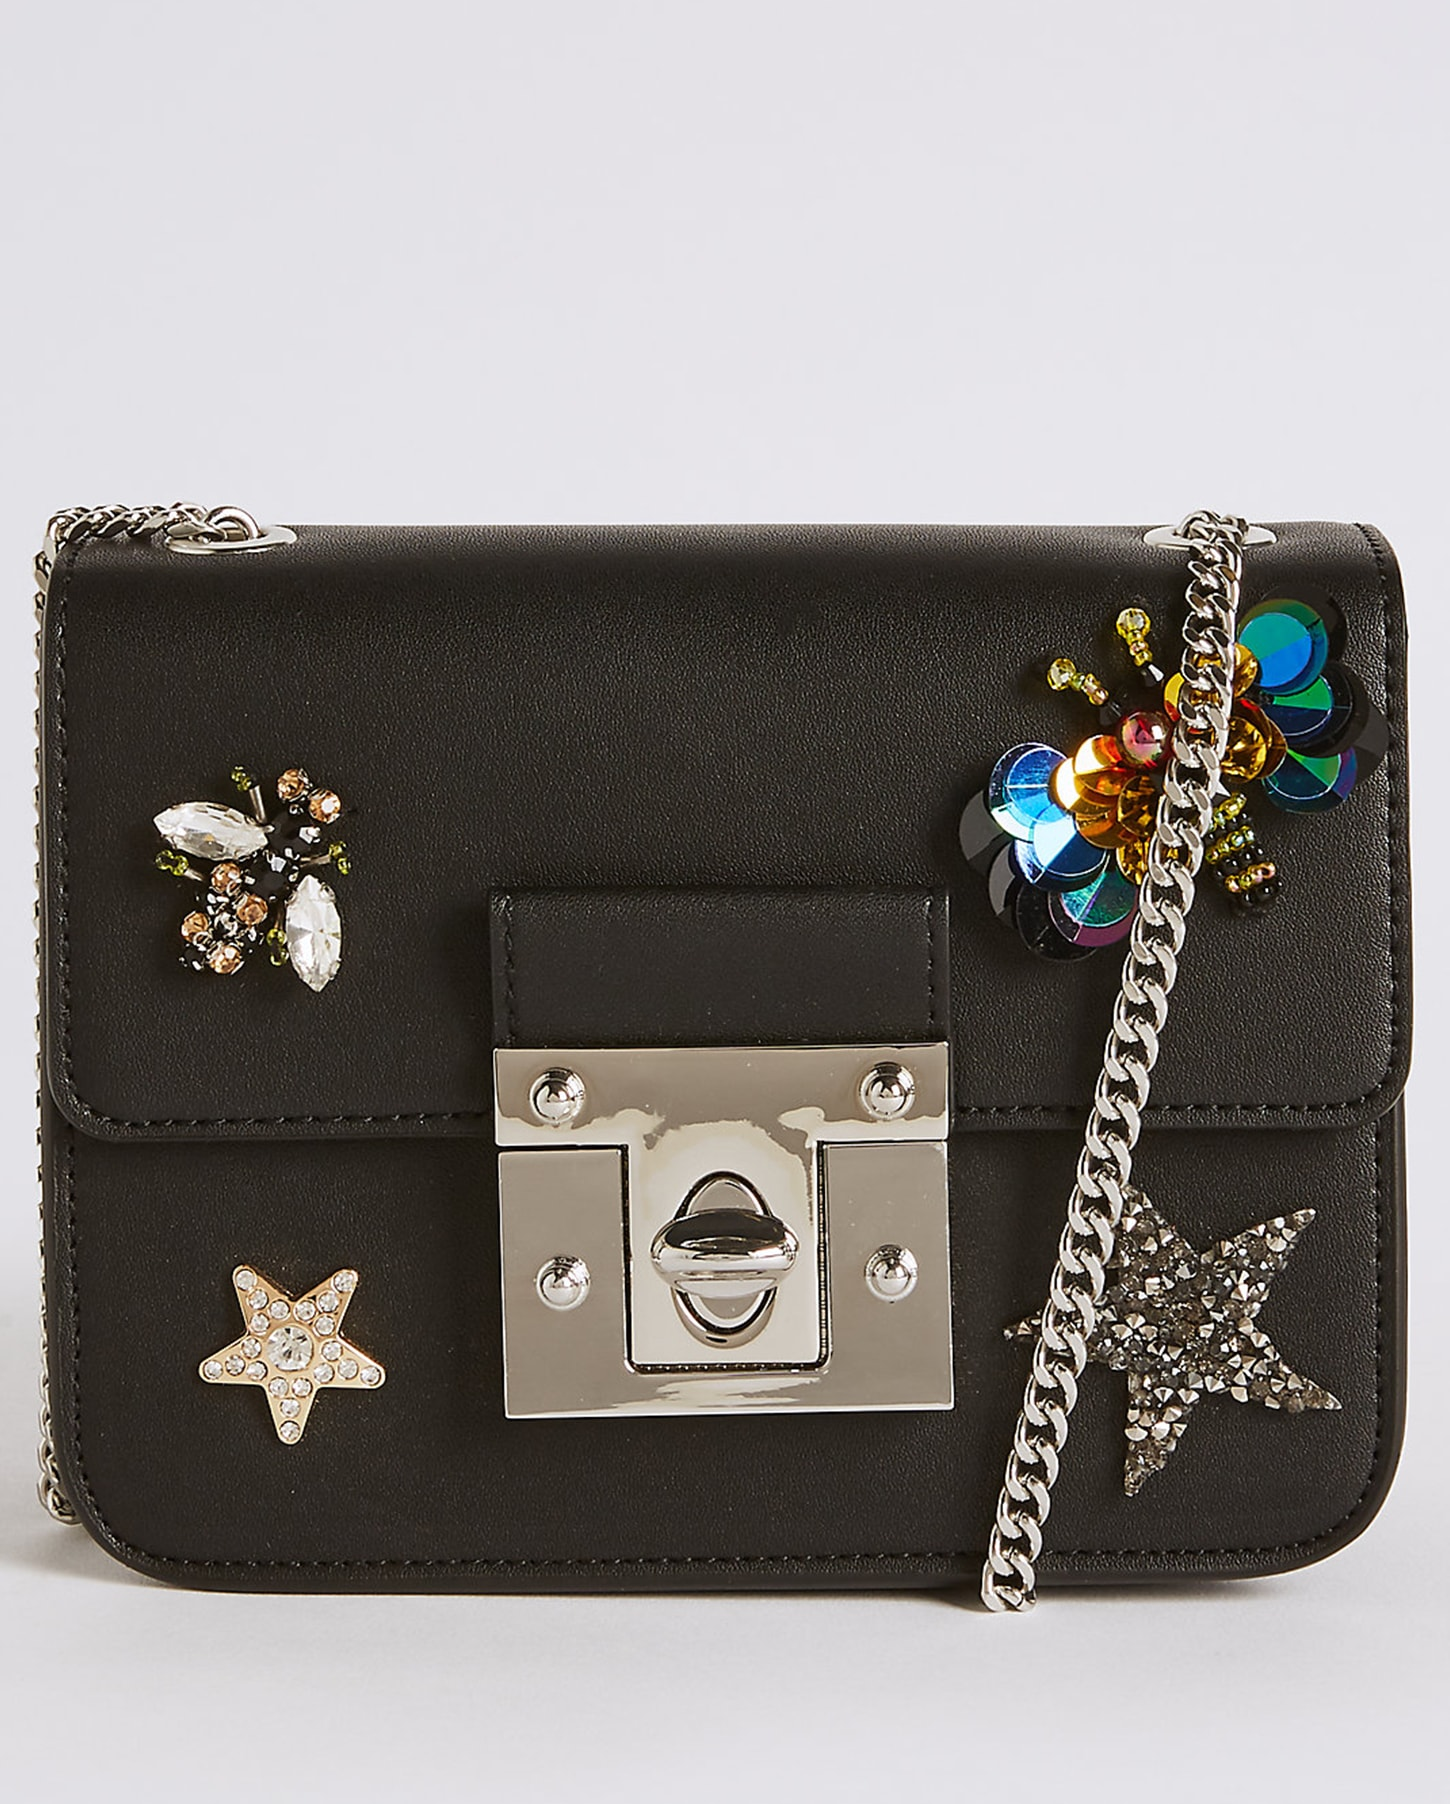 M&S embellished bag